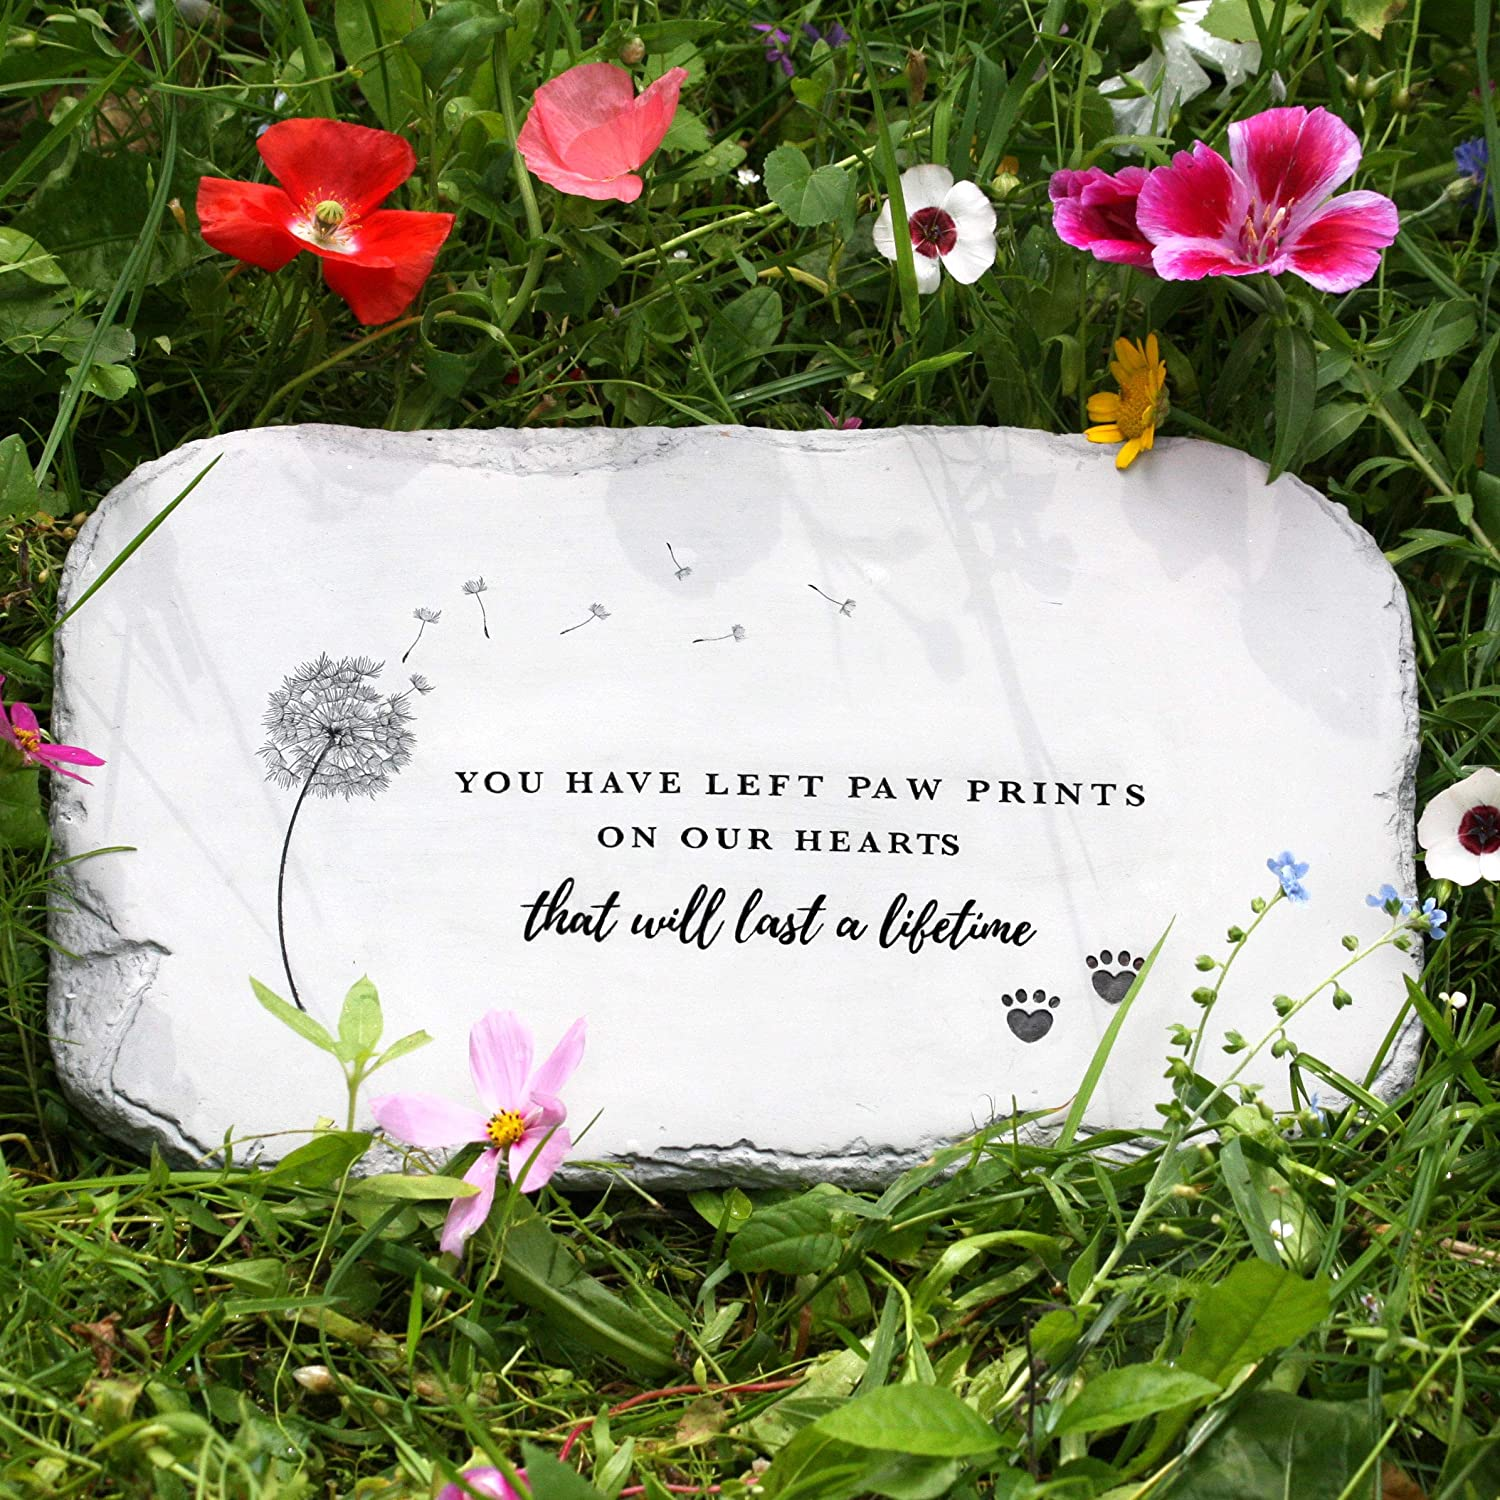 PetAngell Pet Memorial Stones, Loss of Dog Memorial Suited to Cats and All Animals - Pet Grave Markers for The Garden or Home, 10.5 x 7 x 0.5 inches: Waterproof Resin